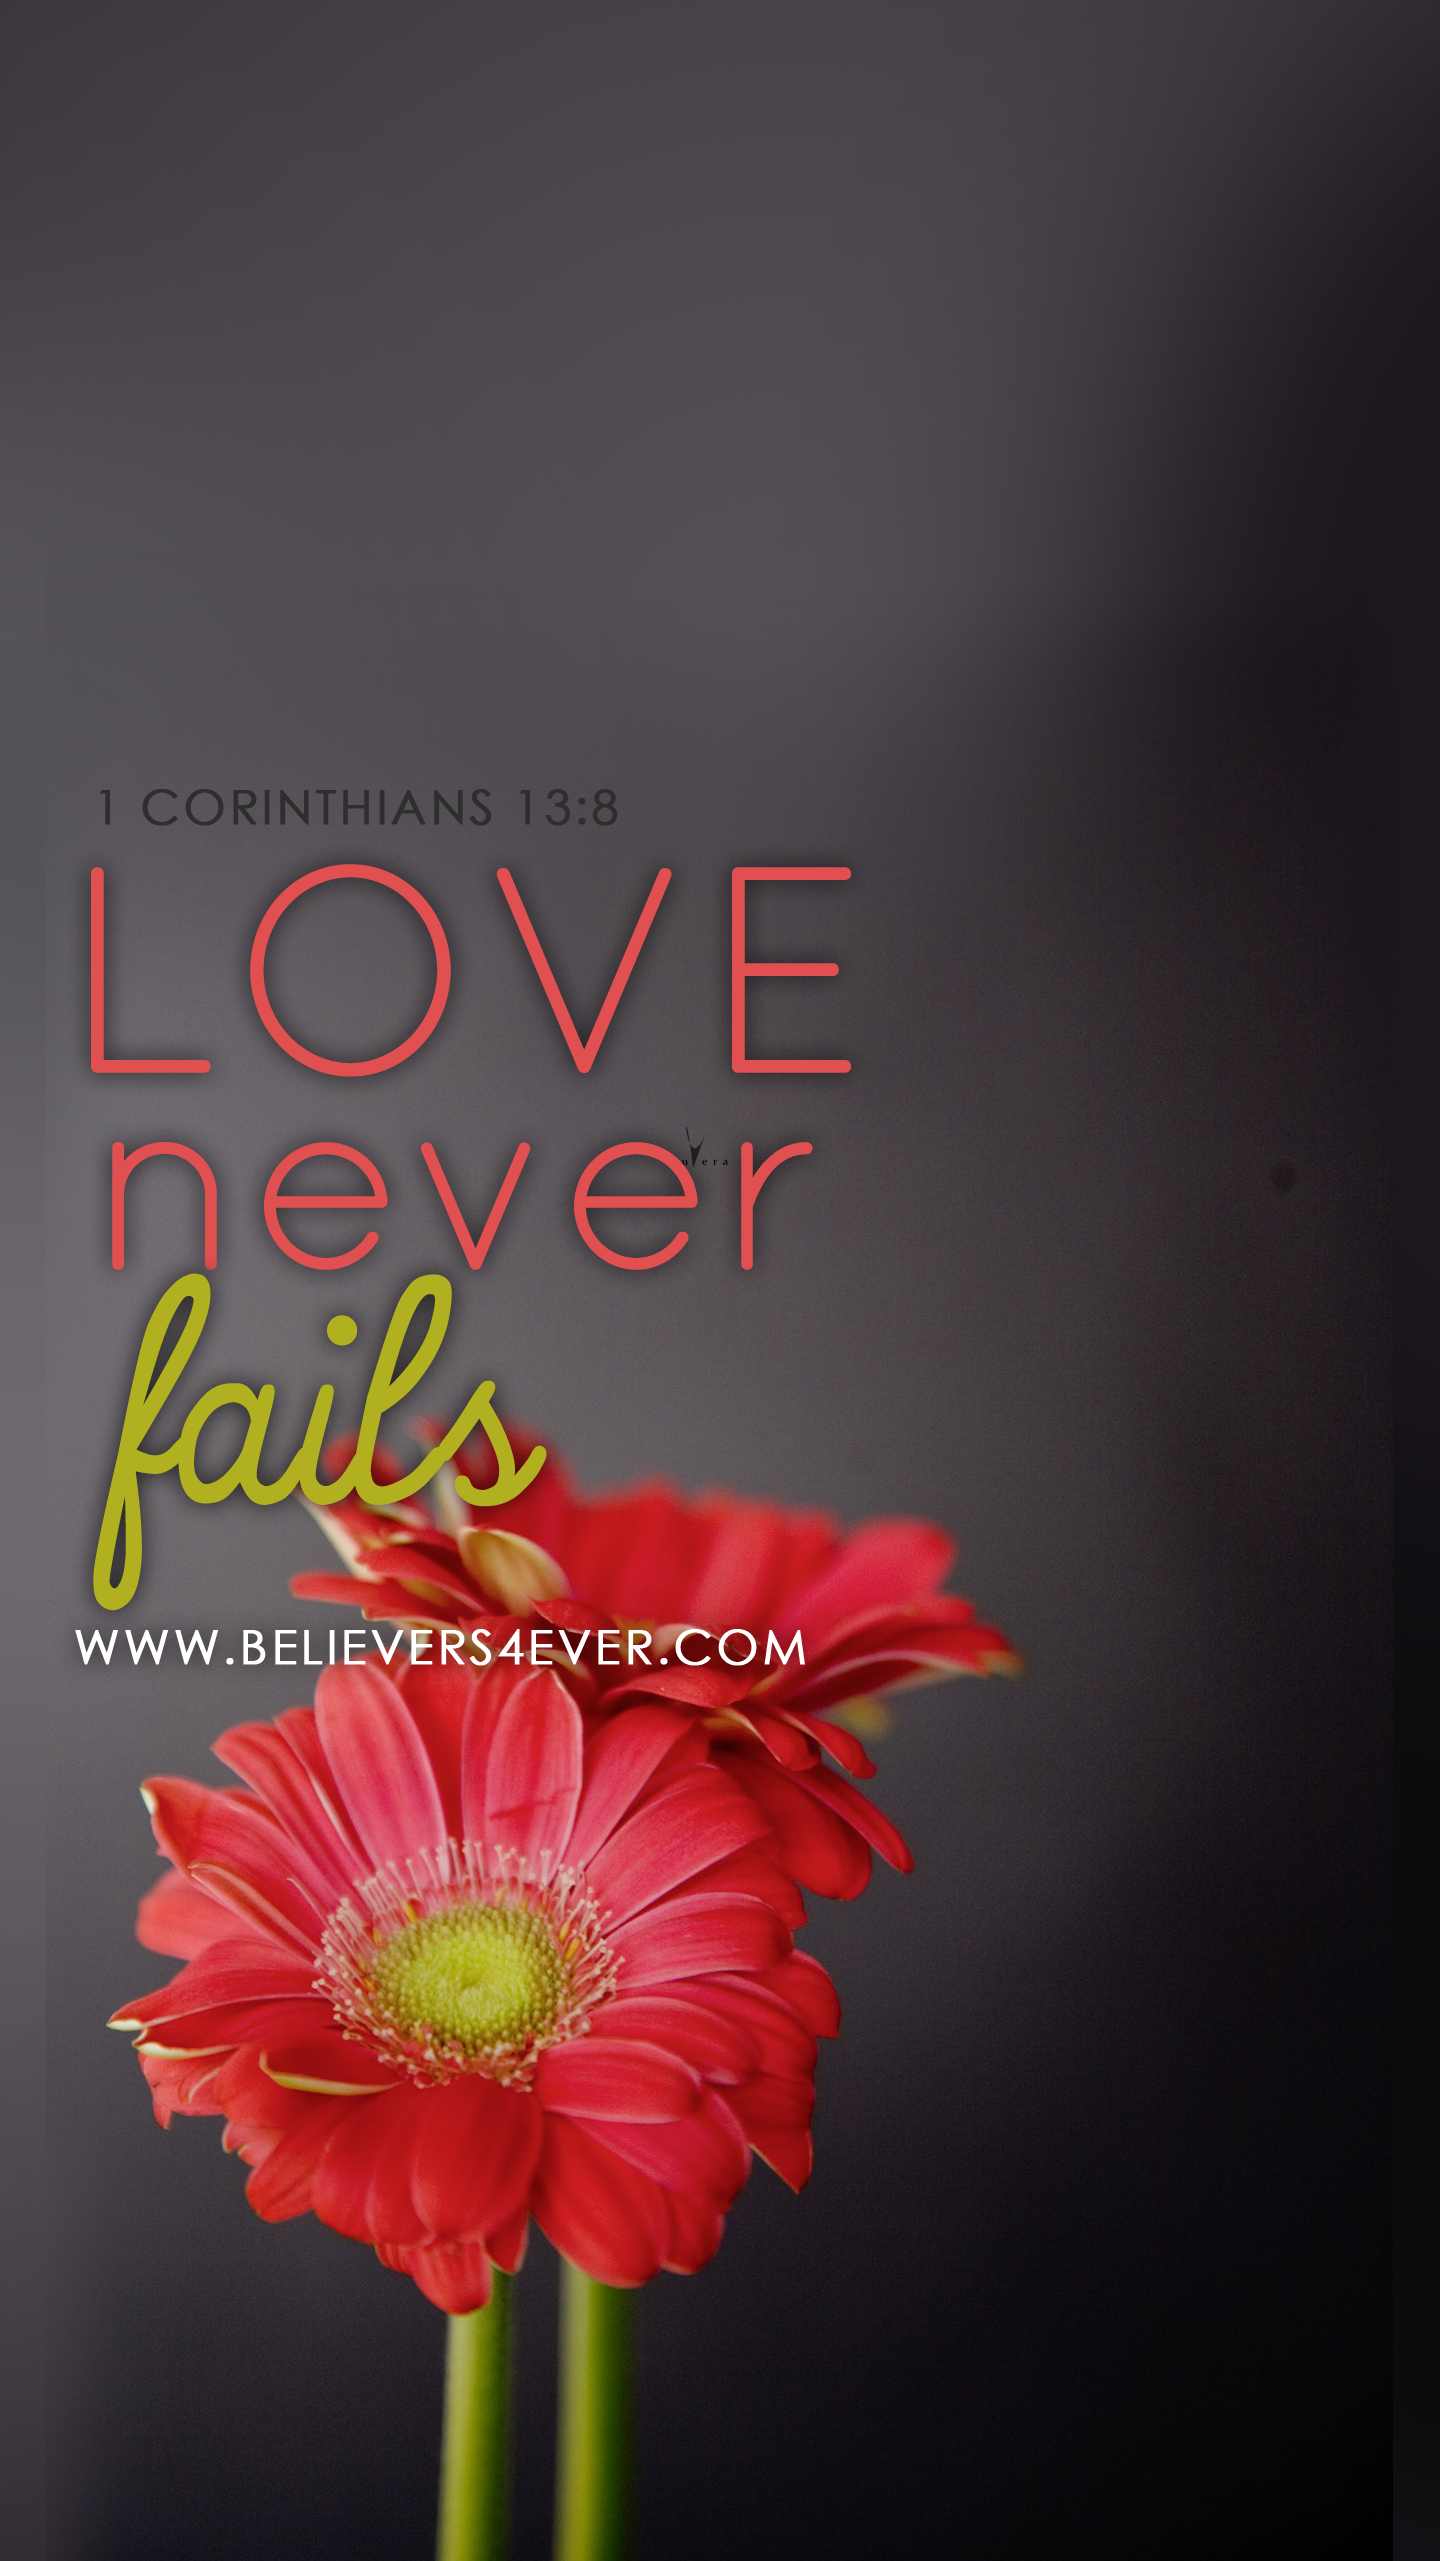 Love never fails 1 Corinthians 13:8.